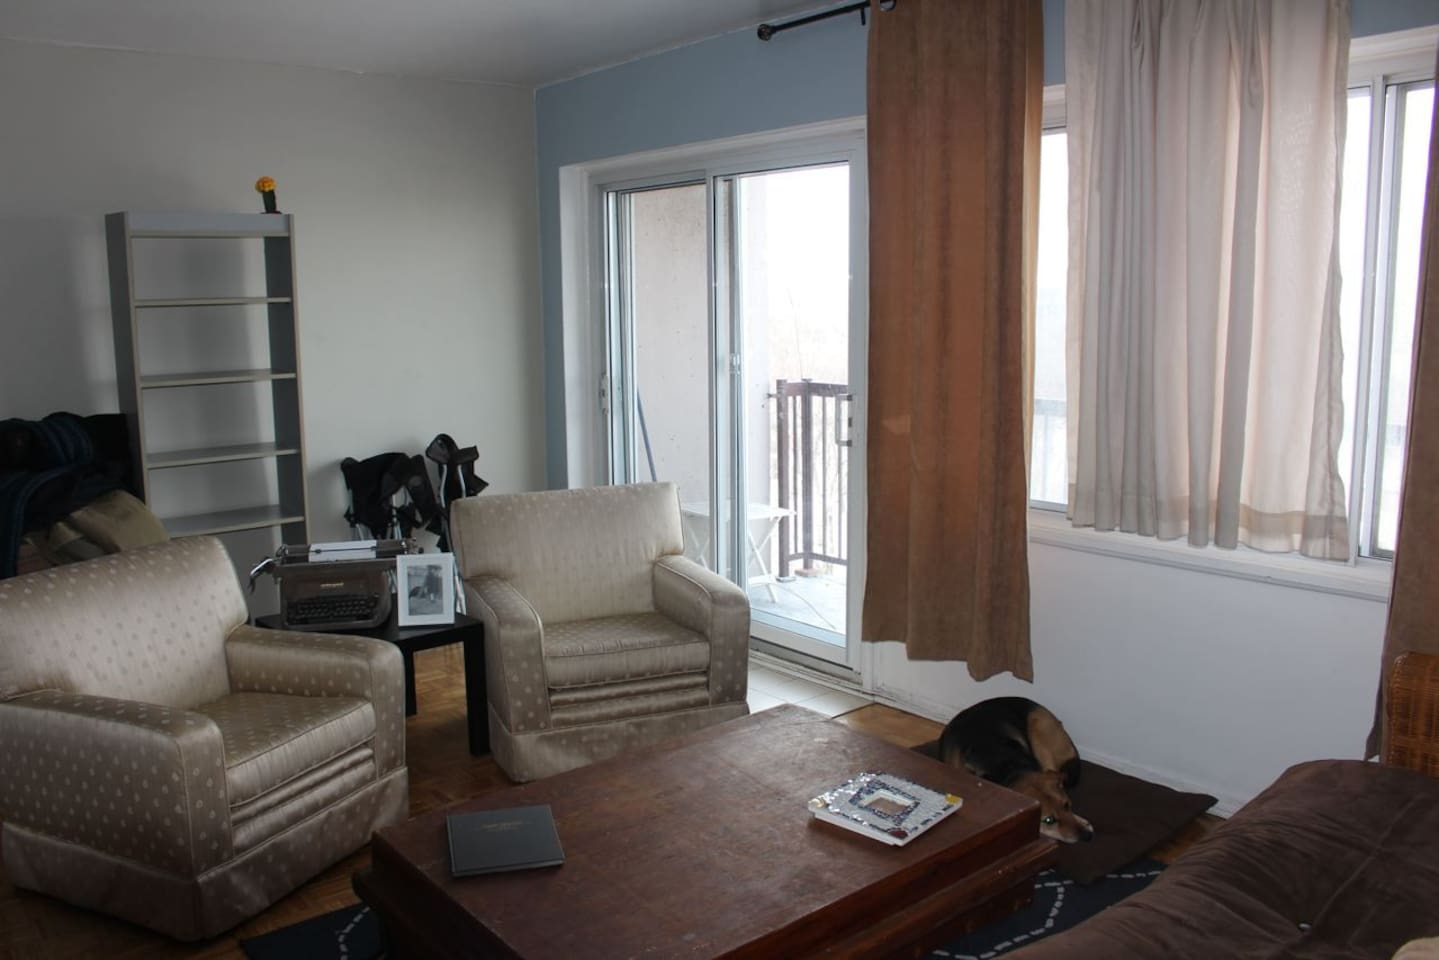 Spacious living room. My place gets lots of light.